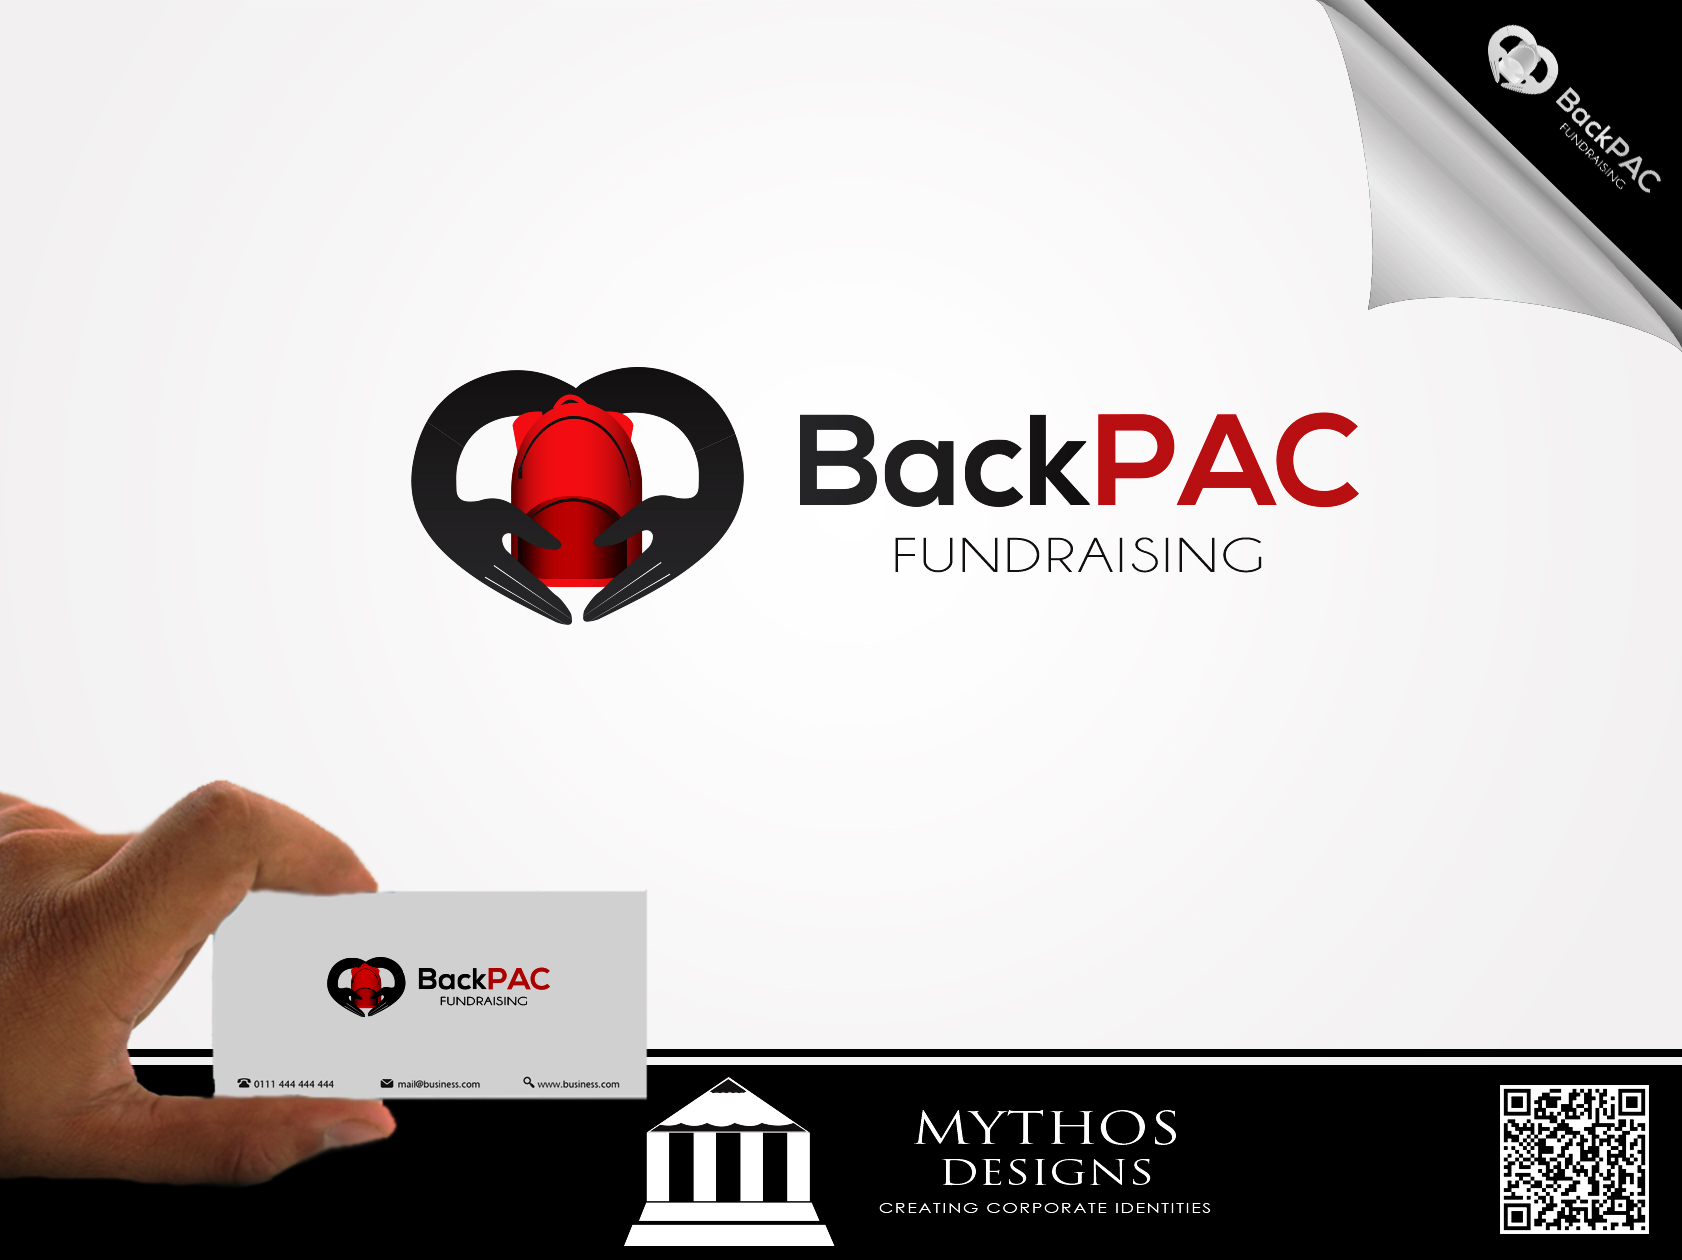 Logo Design by Mythos Designs - Entry No. 89 in the Logo Design Contest Imaginative Logo Design for BackPAC Fundraising.